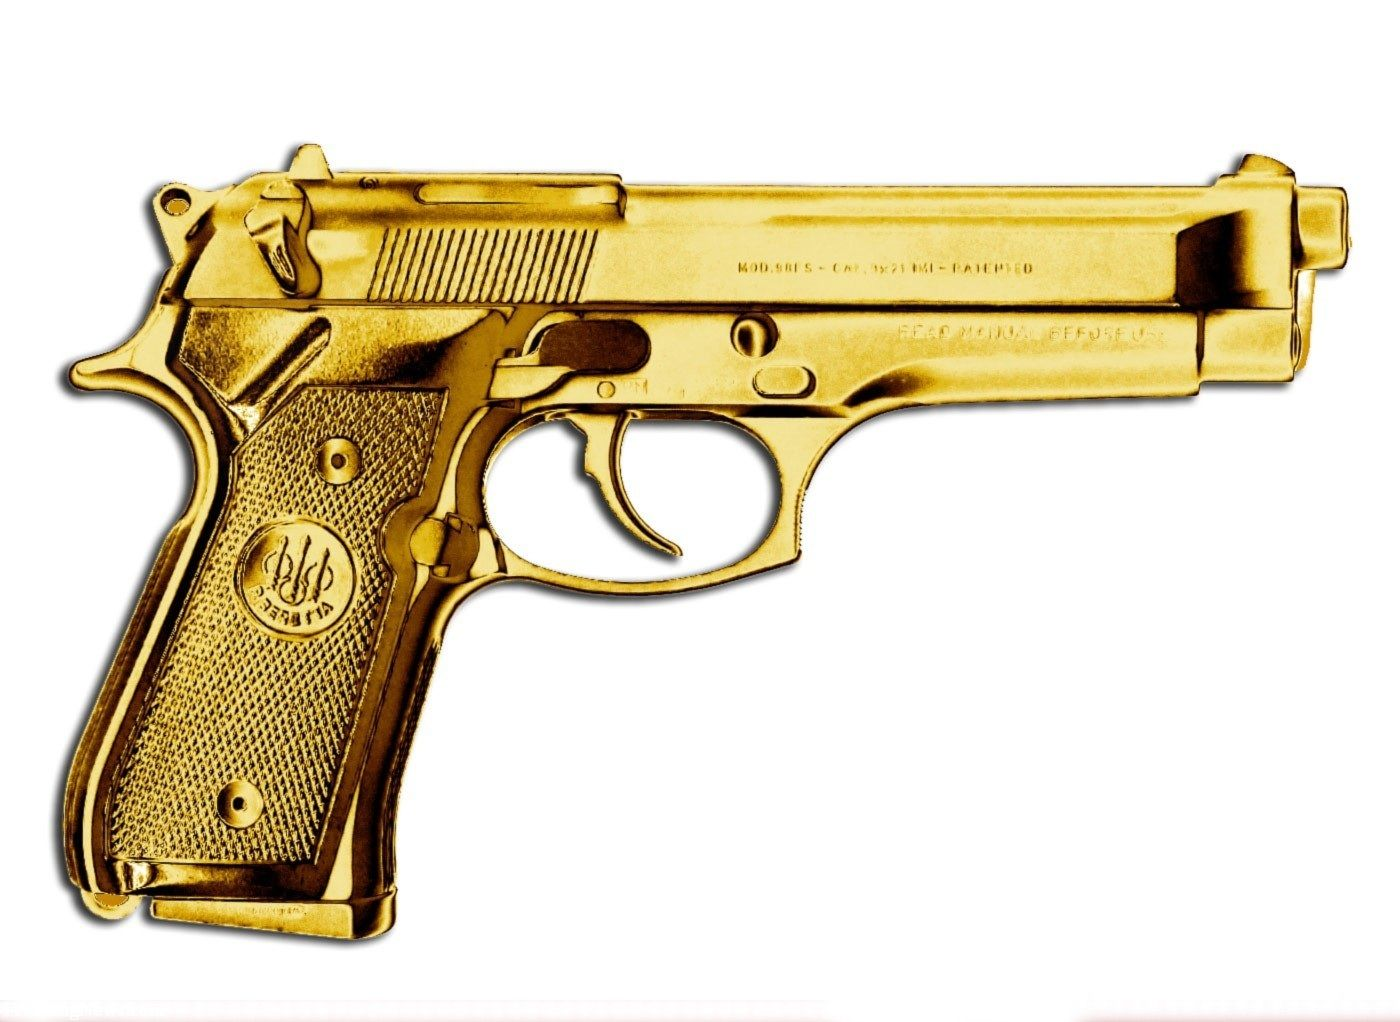 Golden Gun Hd Wallpapers Wallpaper E60711c0db14170d736e9098c7448027 Large 80323 1400x1022